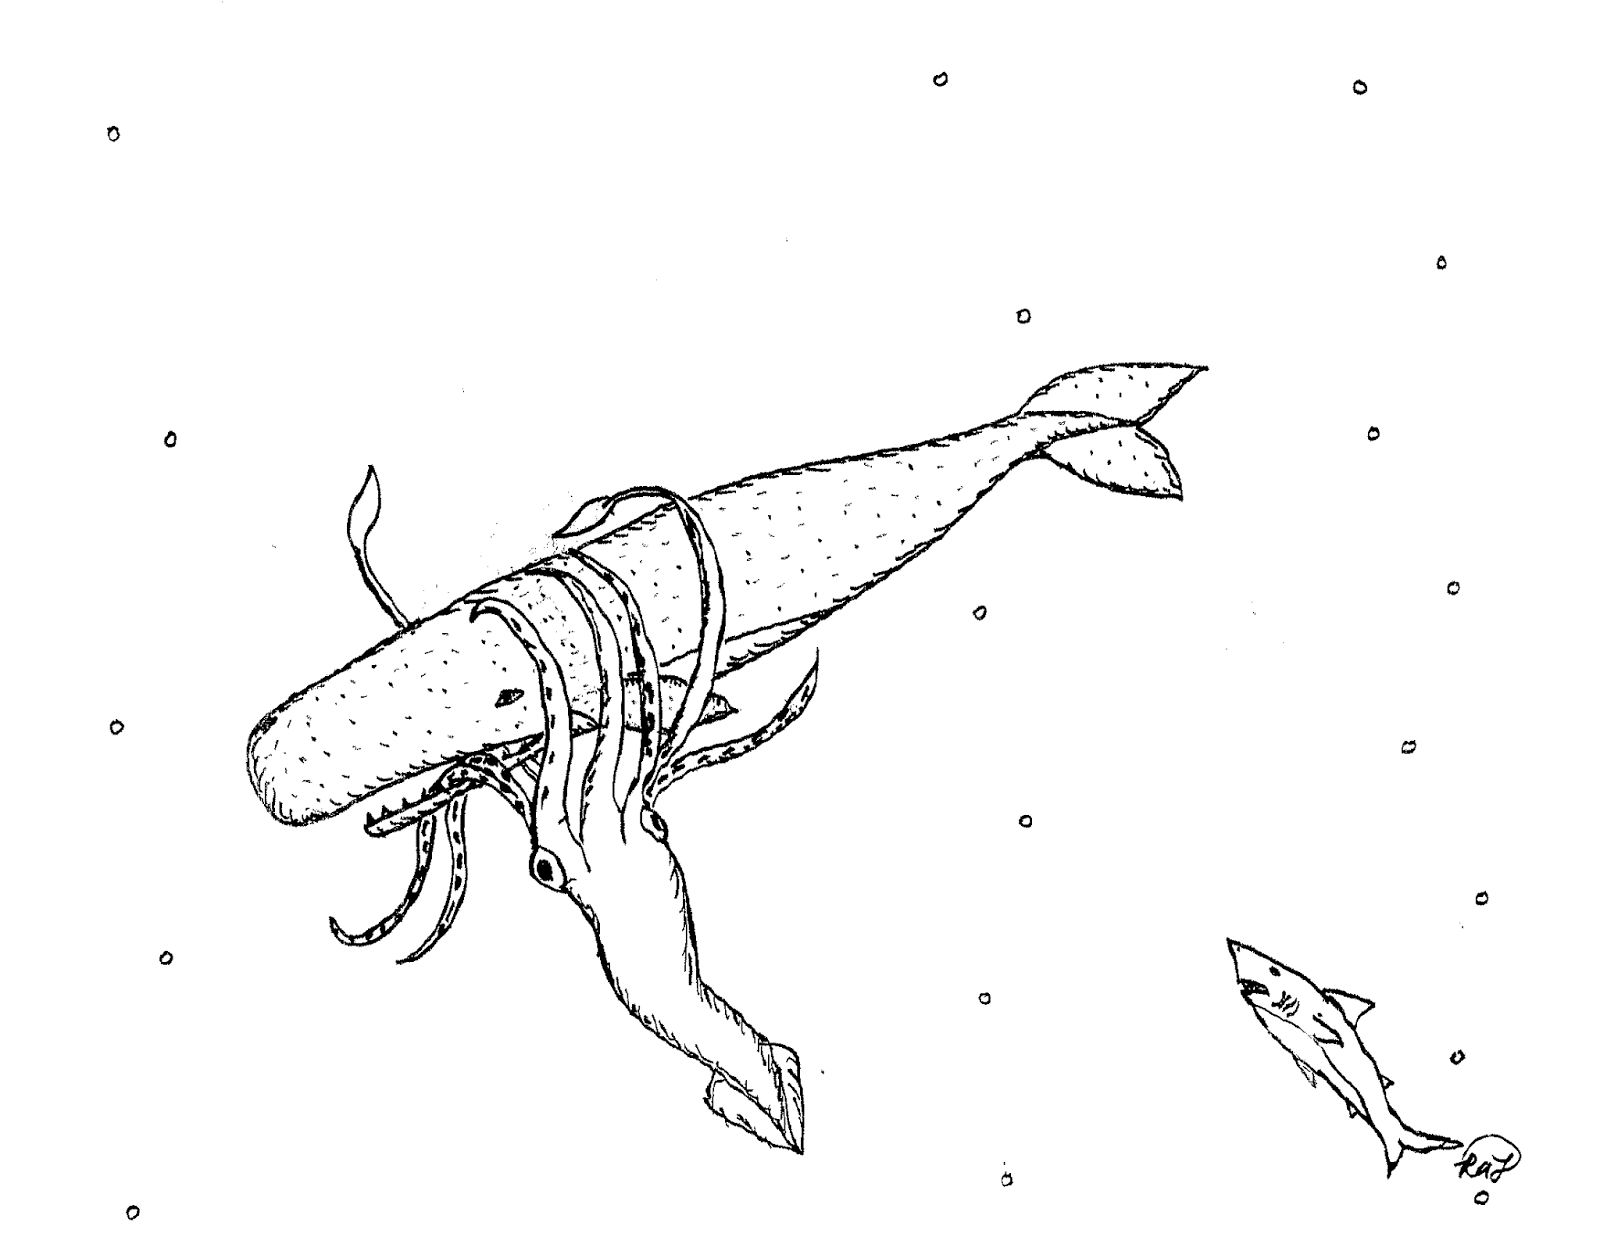 Robin S Great Coloring Pages Sperm Whale Vs Giant Squid